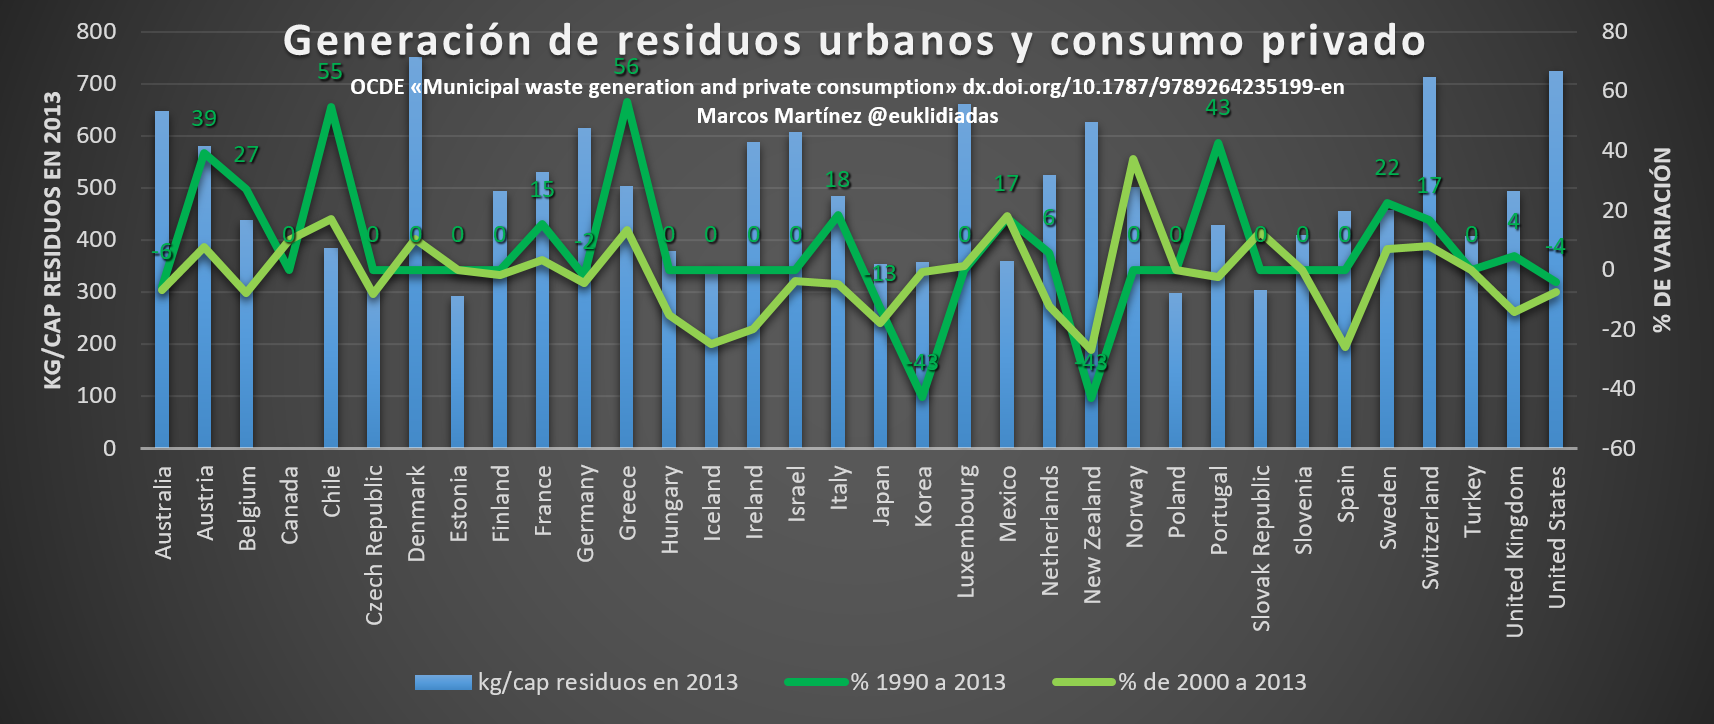 Suiza Municipal waste generation and private consumption